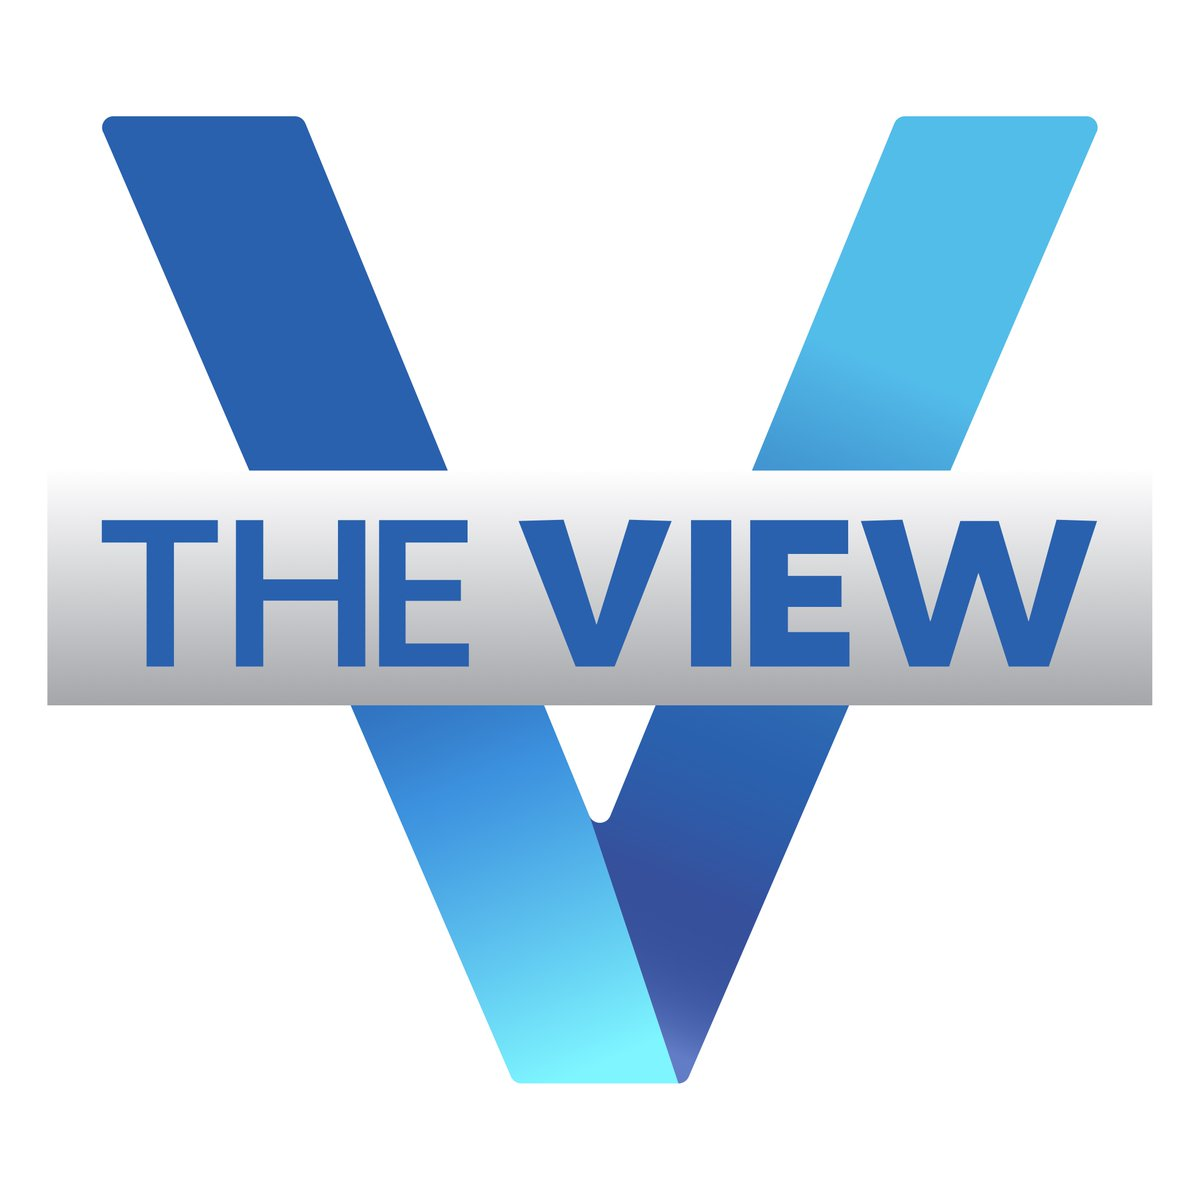 .@TheView Is the Most-Watched Daytime Talk Show, Taking Top Spot in All 21 Wks of Original Telecasts This Season in HH & 20 of 21 Wks in Total Viewers. Wk-Wk & Yr-Yr, Sees Gains Across the Board, Delivering Its Most-Watched Season in 7Yrs, Season to Date.